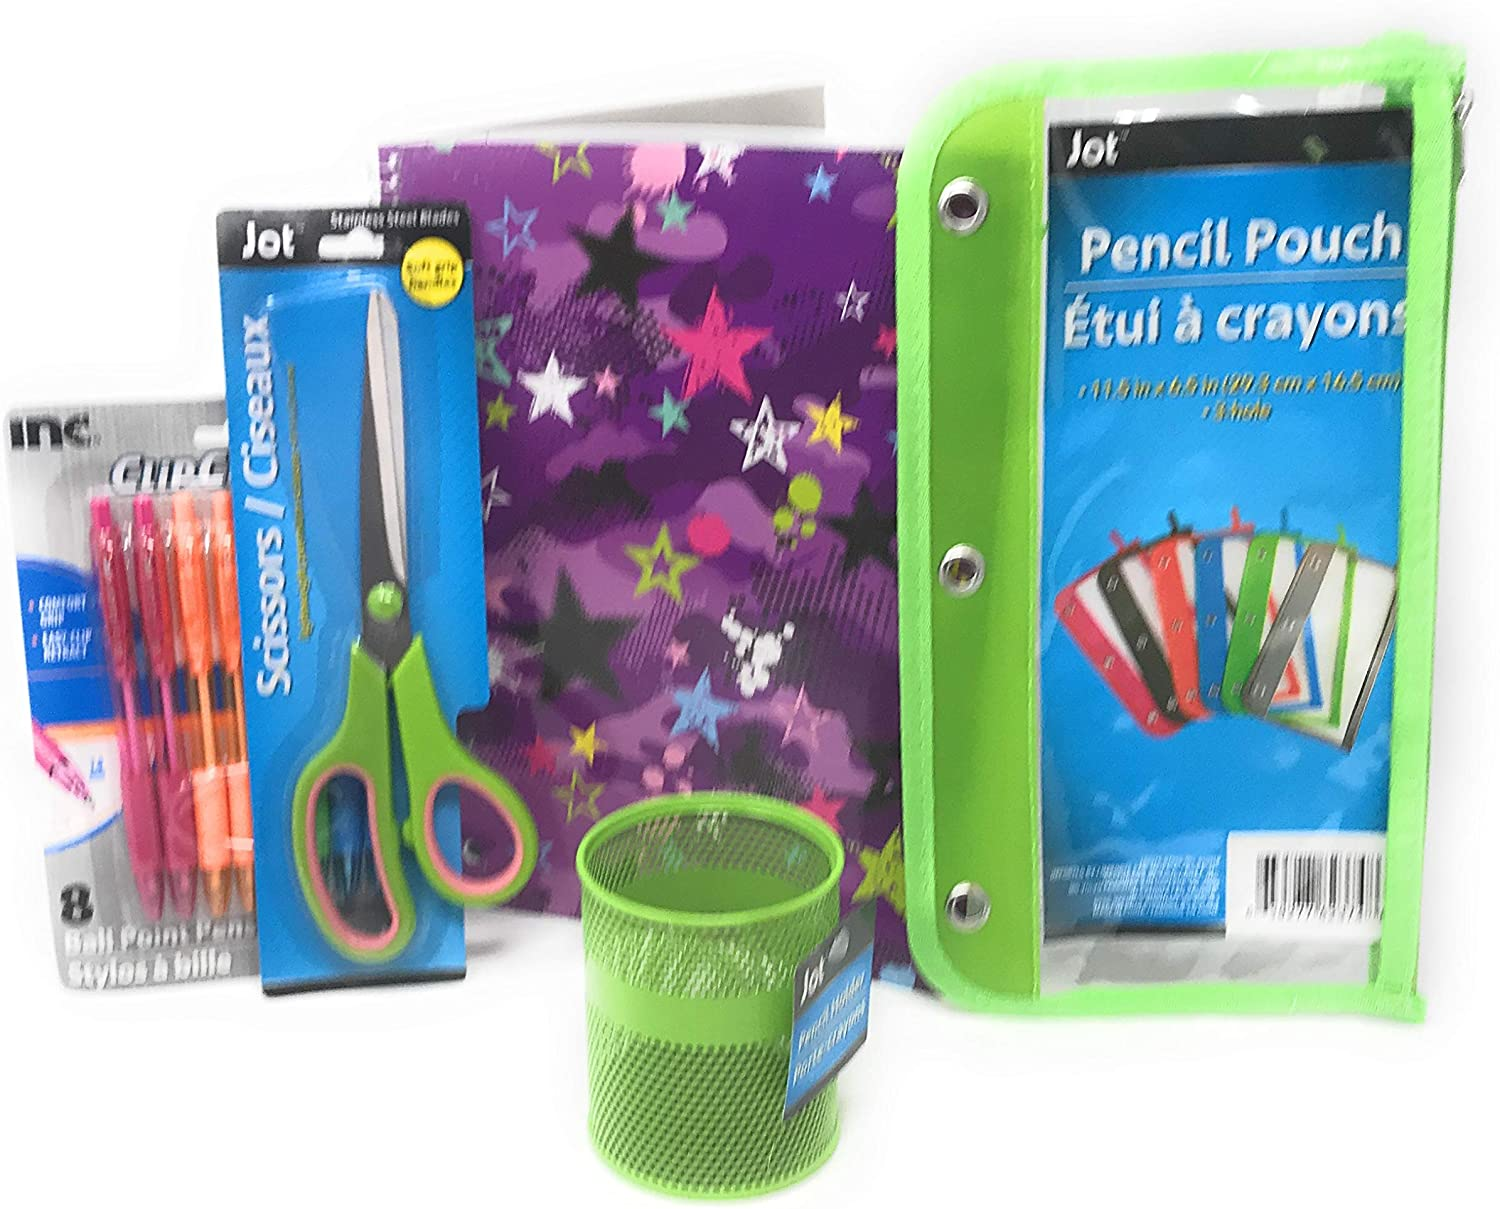 Back to School Be a Star Bundle, Includes 1 Star Notebook (70 sheets), 1 Pencil Holder, 1 Pencil Pouch, 1 Pair of Scissors, and 1 Pack of Colored Pens (8 pens)